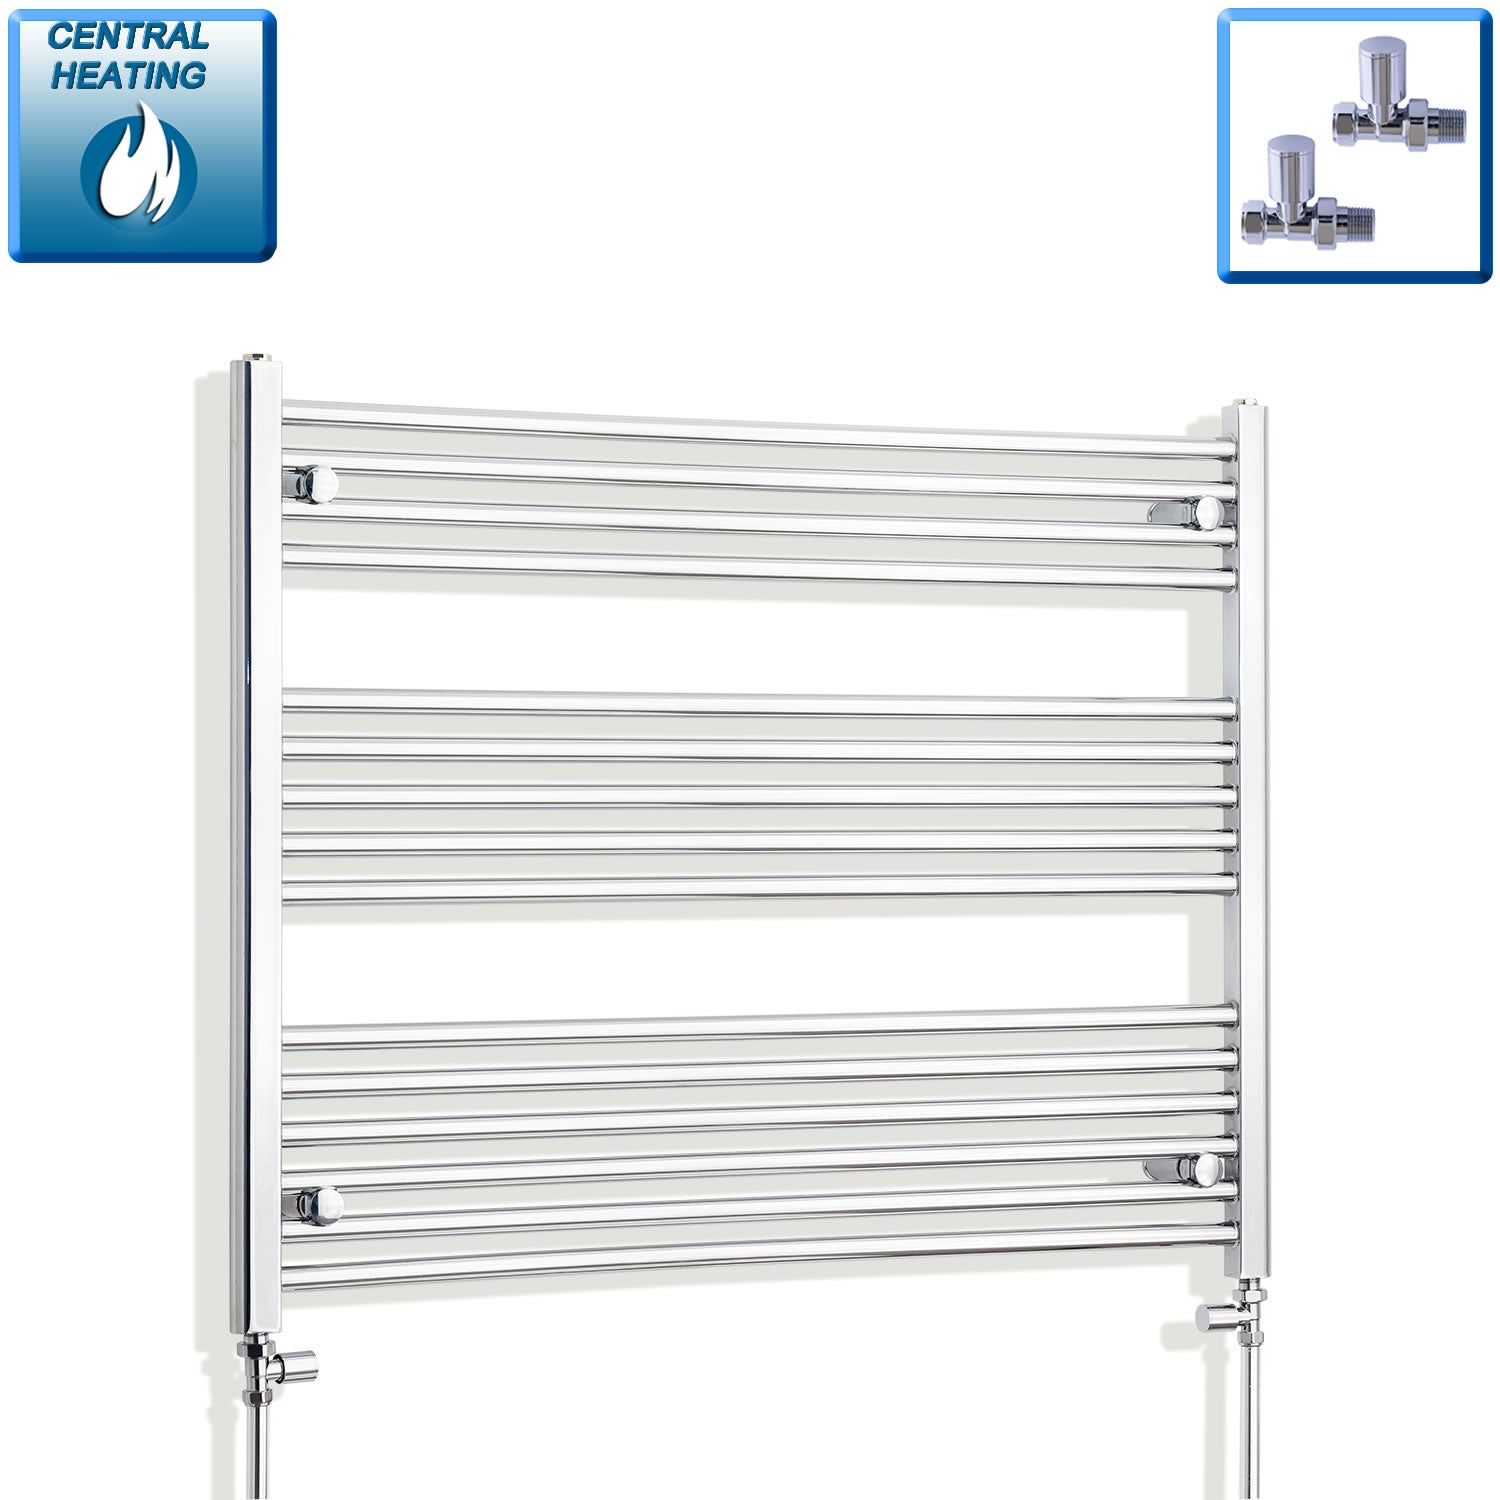 1200mm Wide 800mm High Flat Chrome Heated Towel Rail Radiator HTR,With Straight Valve